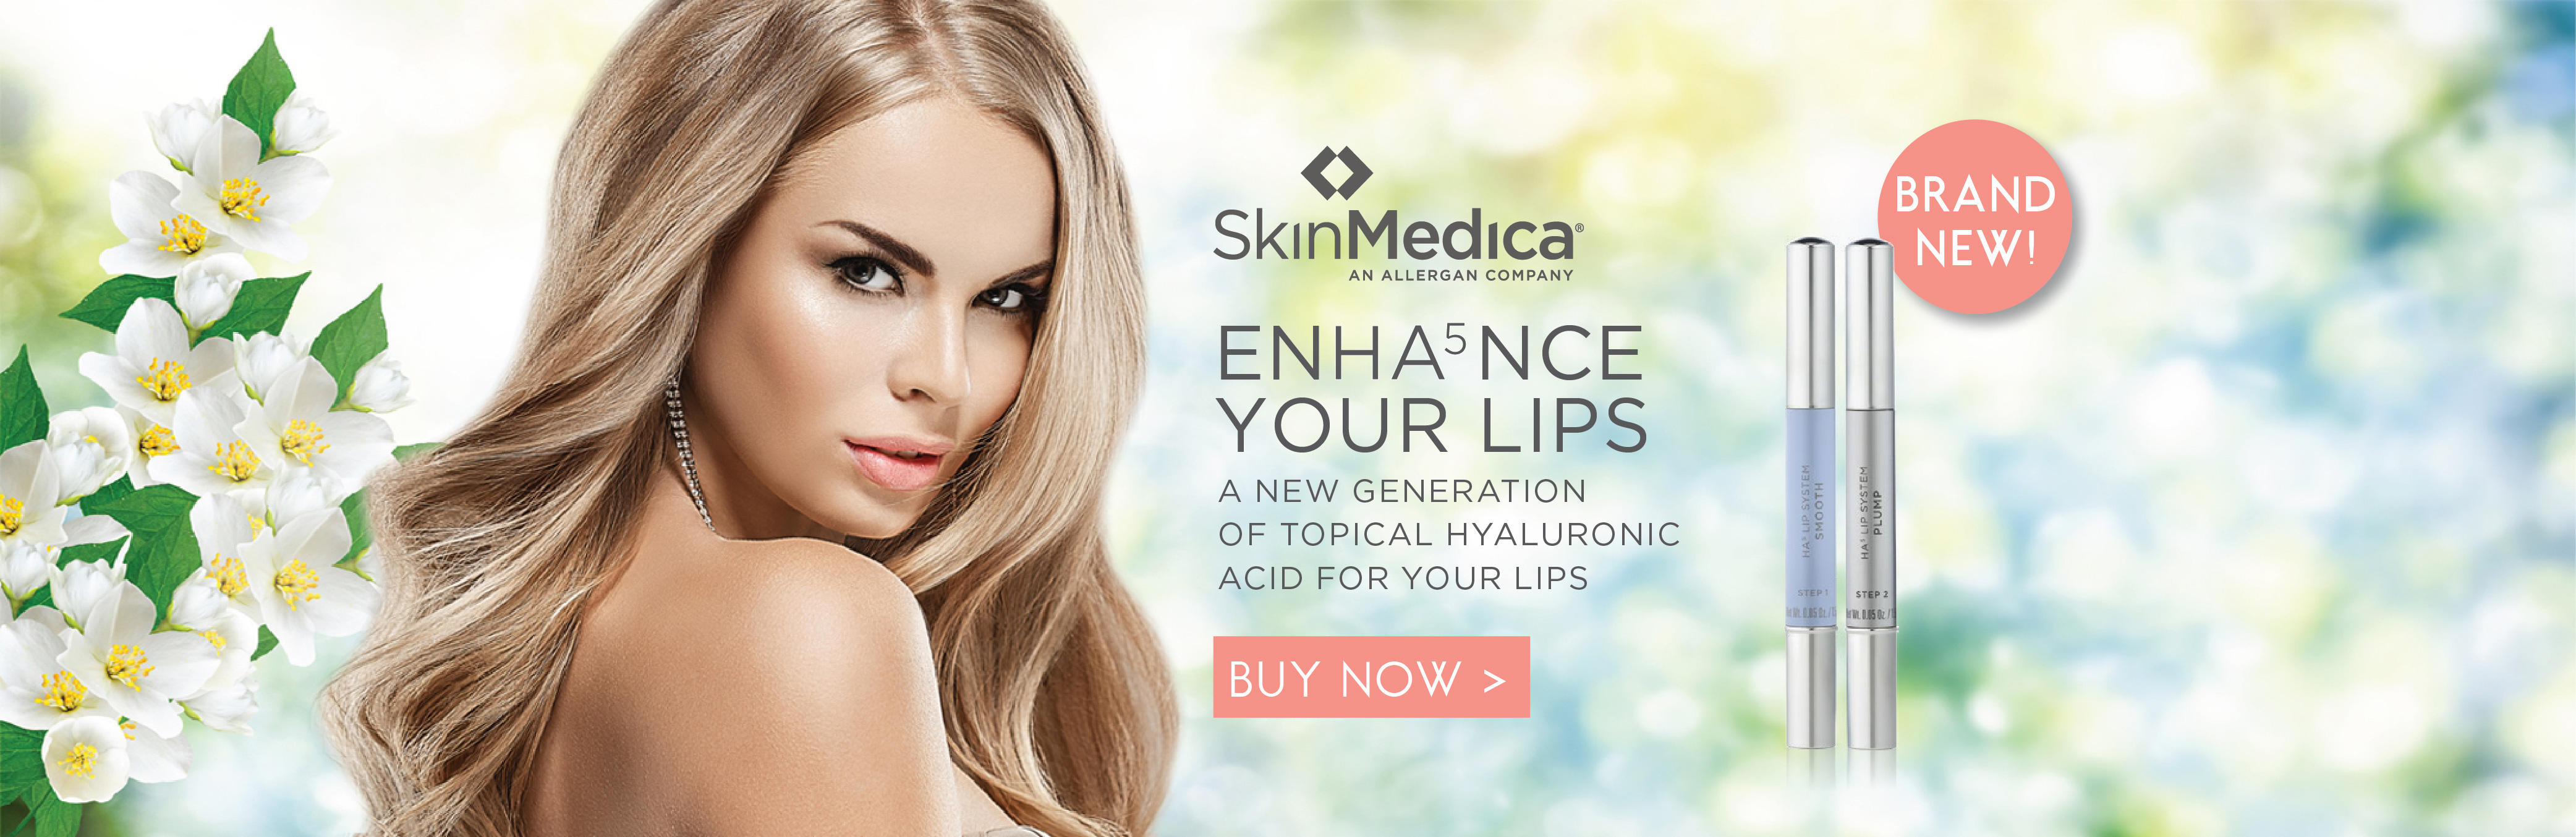 SKINMEDICA-HA5-LIPS-01web